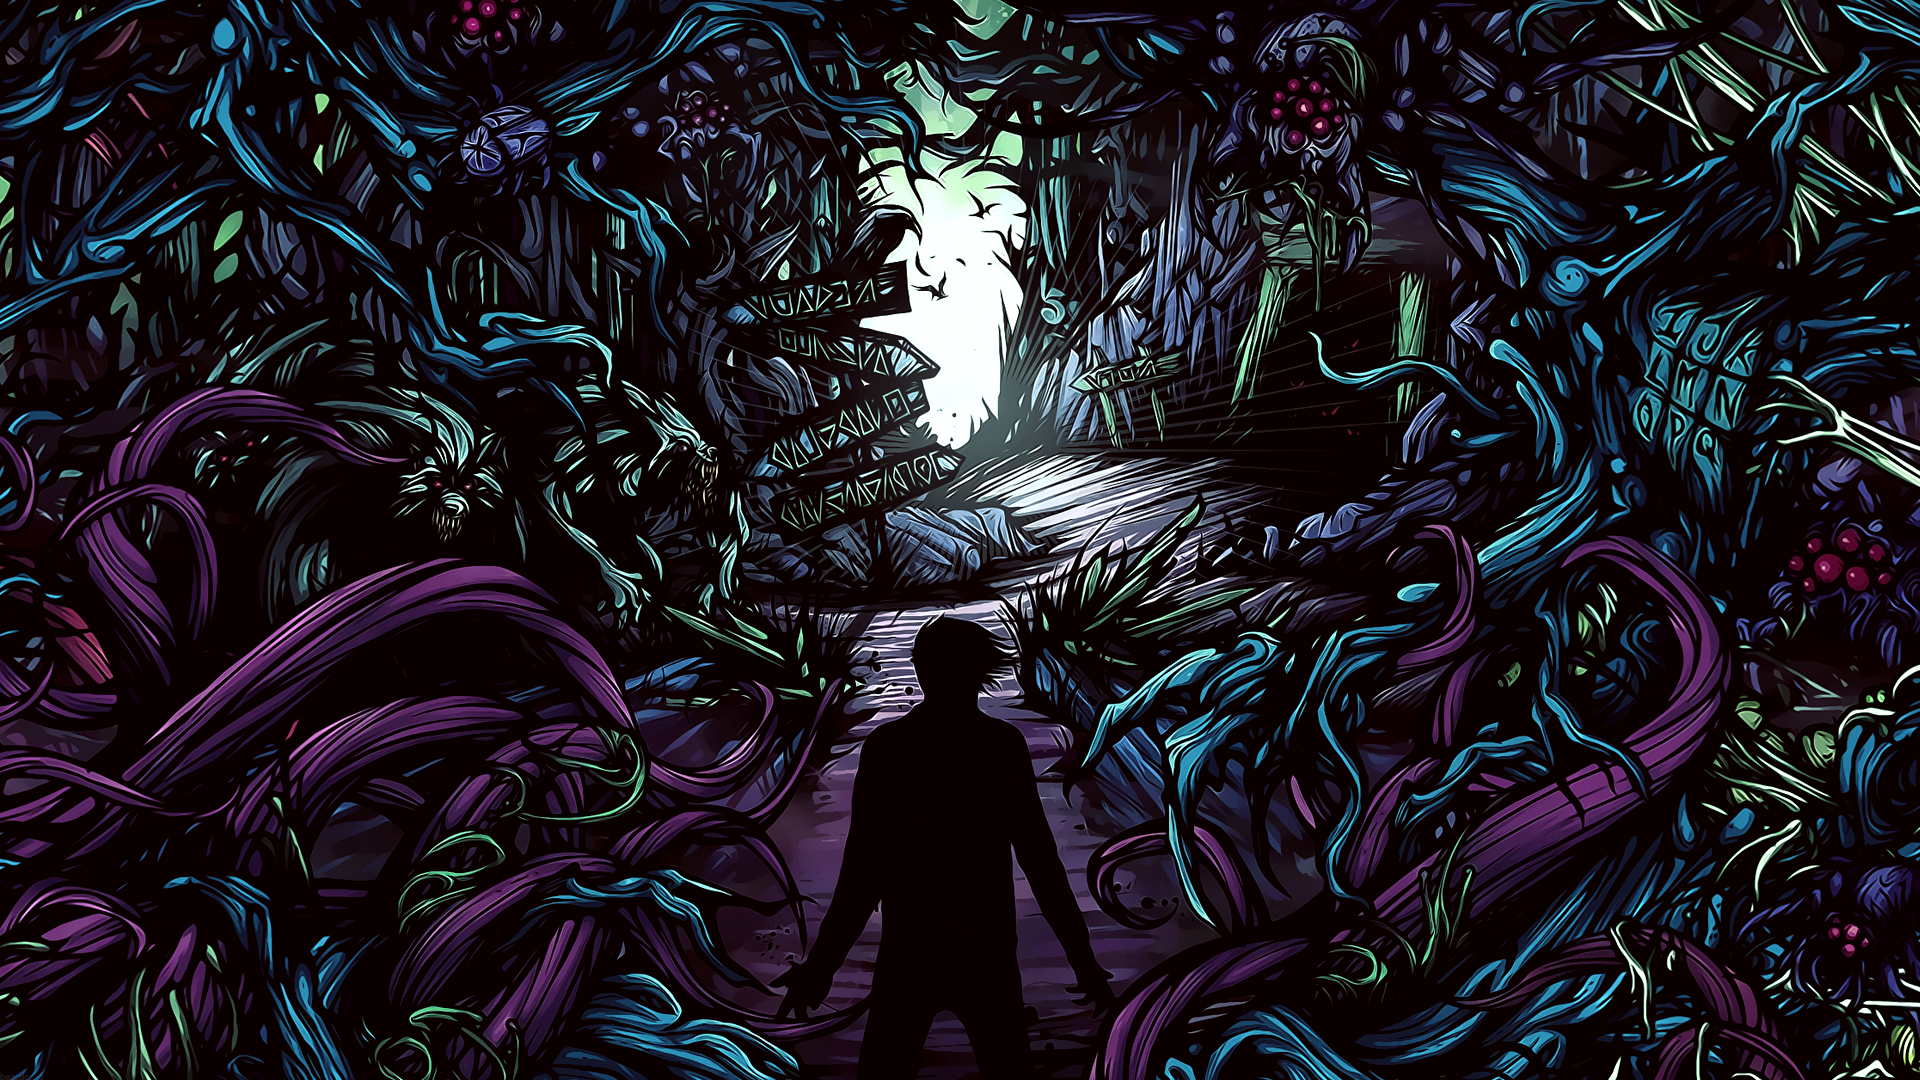 What bands have the coolest album covers for wallpapers ... A Day To Remember Albums